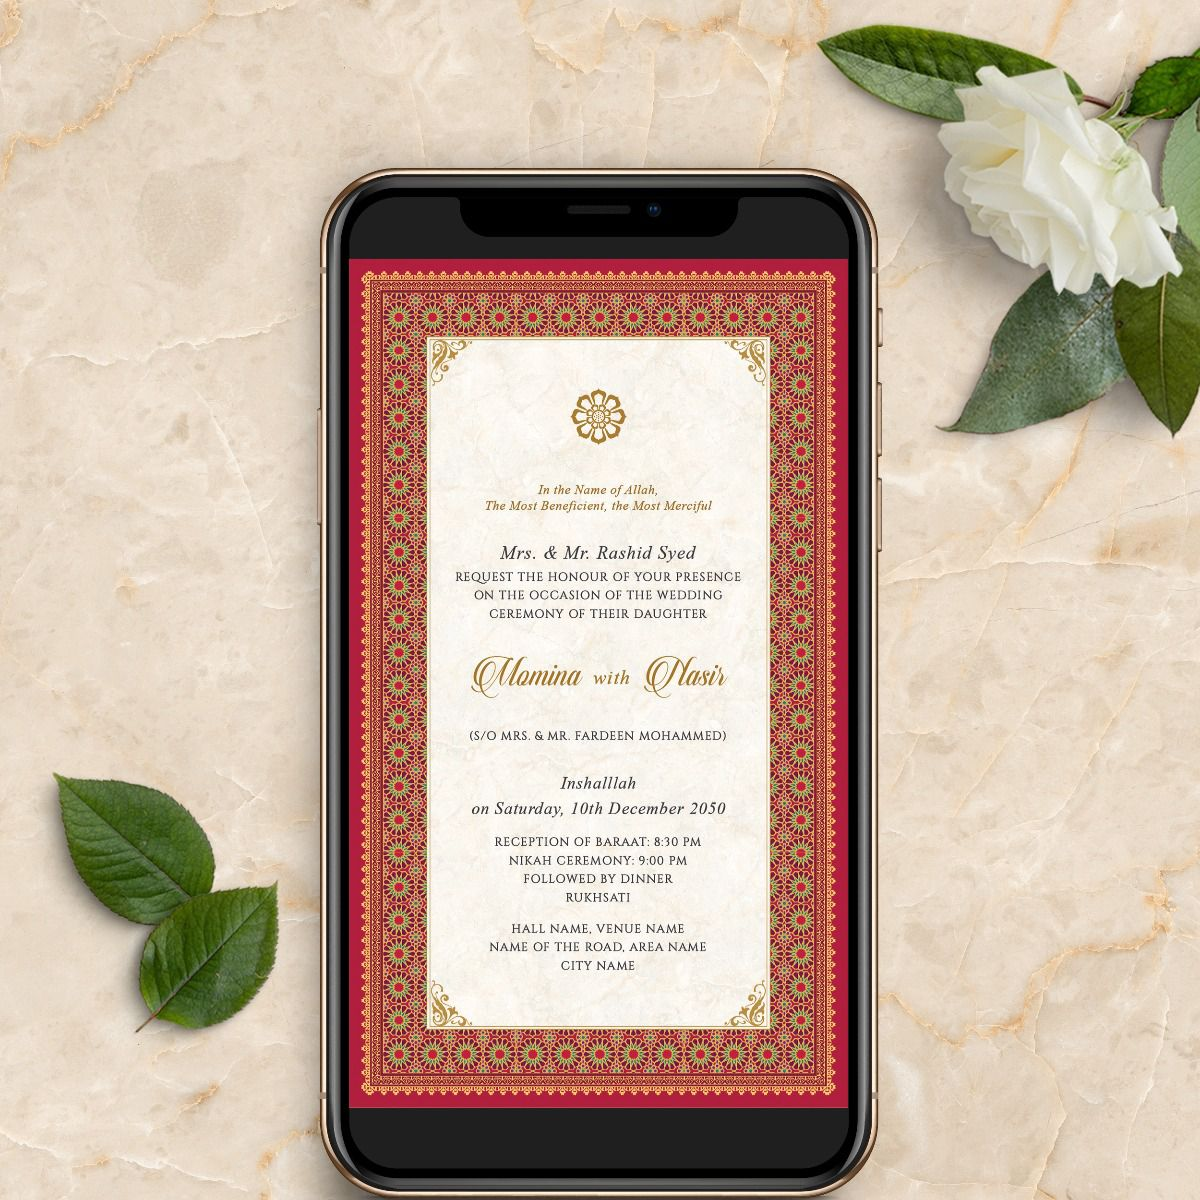 Mughal magnificence - frame